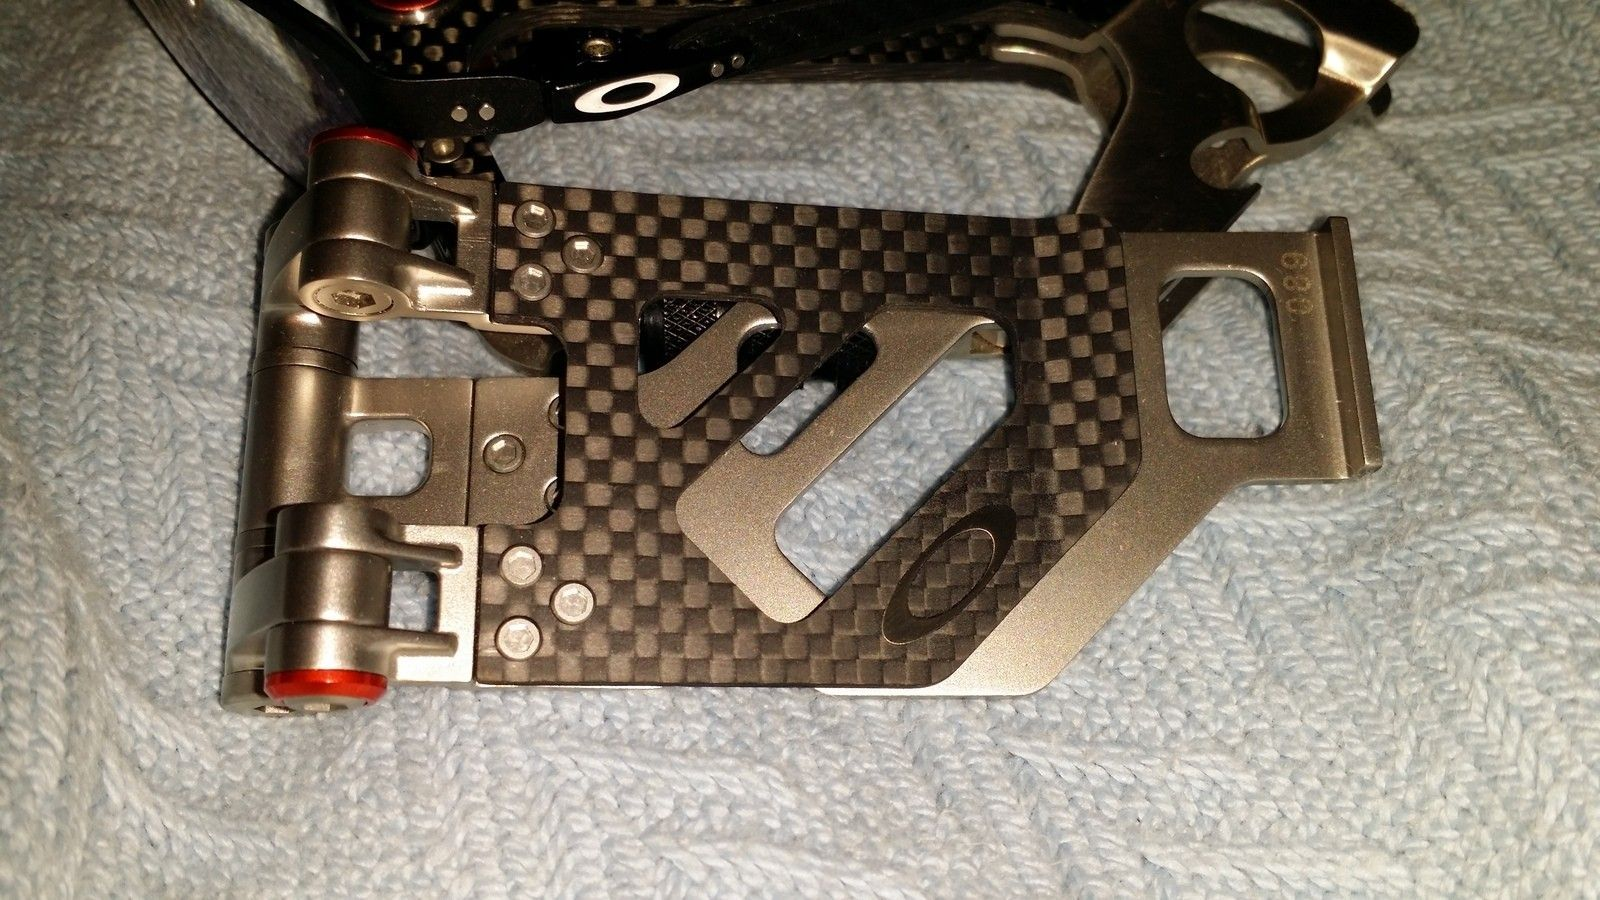 New carbon fiber clip | Oakley Forum